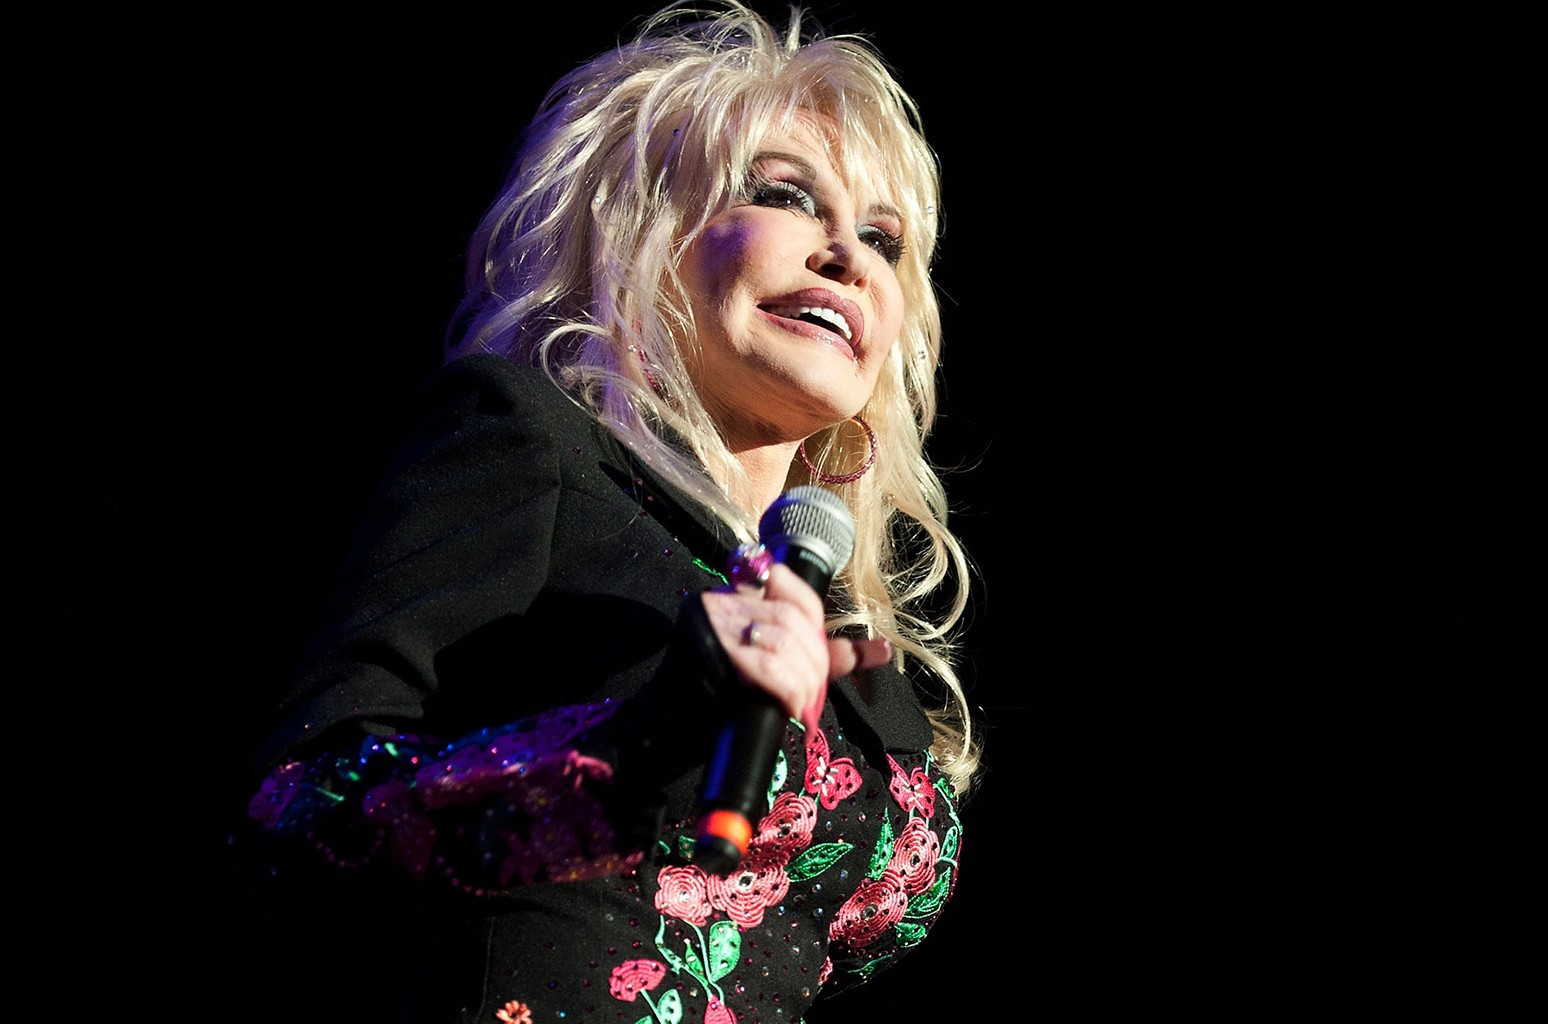 Dolly Parton performs during Marty Stuart's 10th annual Late Night Jam at the Ryman Auditorium on June 8, 2011 in Nashville, Tenn.